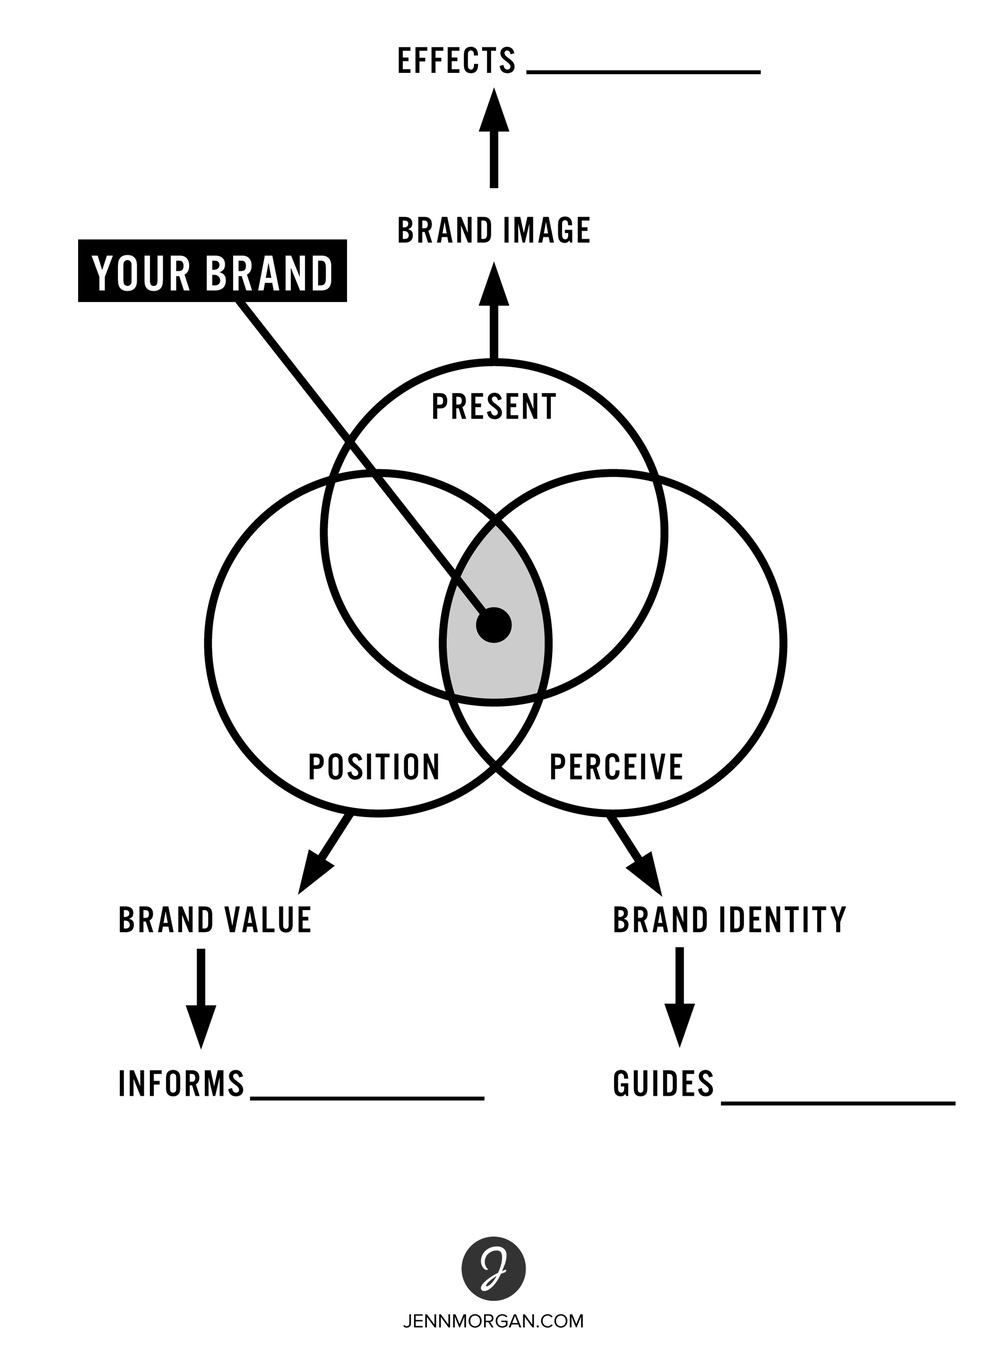 Worksheet 5: BRAND IDENTIFICATION